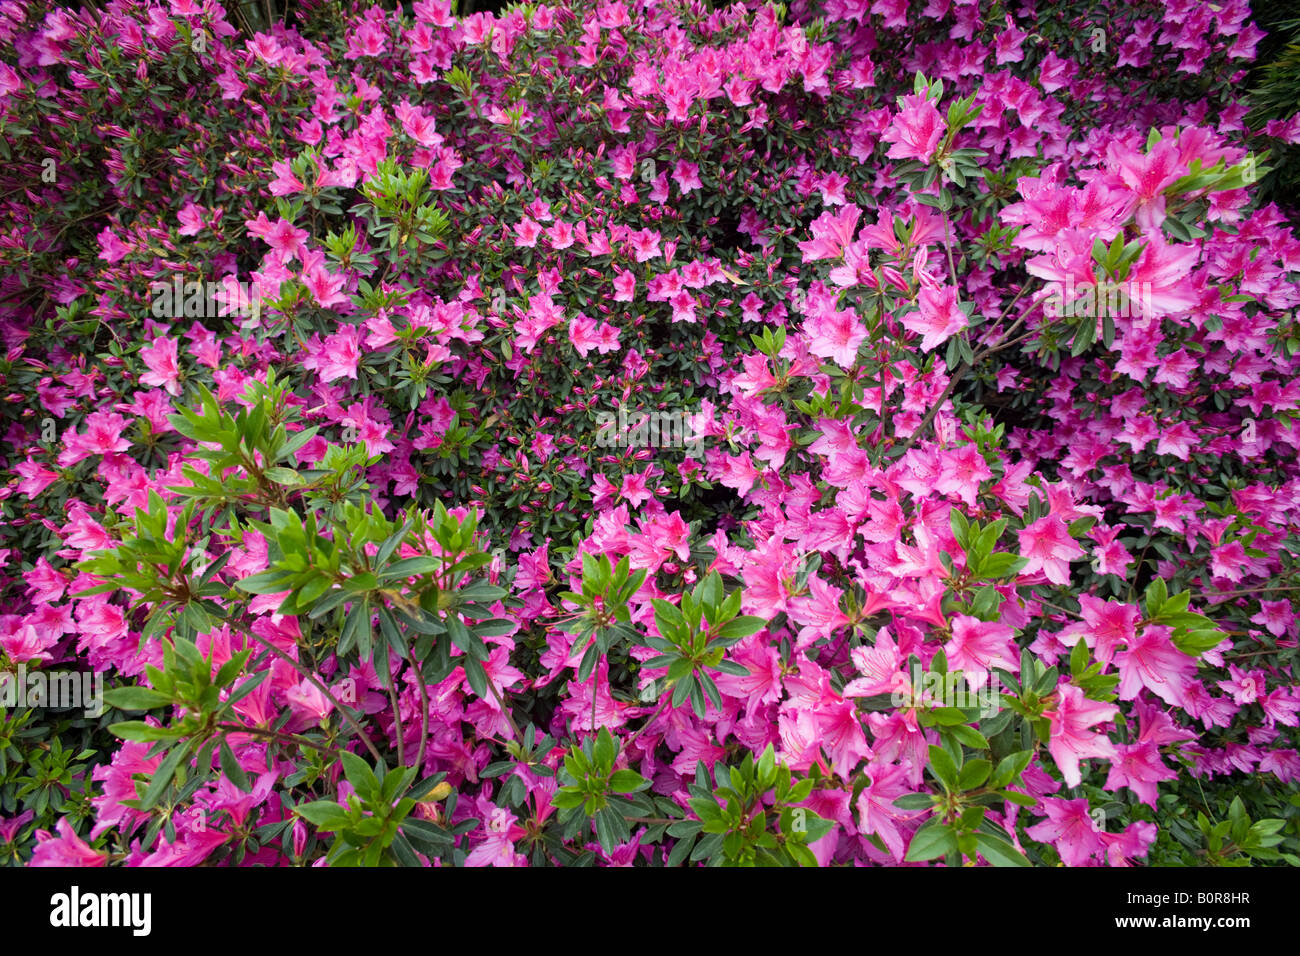 A clump of blossoming Azaleas (France). Massif d'Azalées du Japon (Rhododendron sp) en fleurs (France). Stock Photo